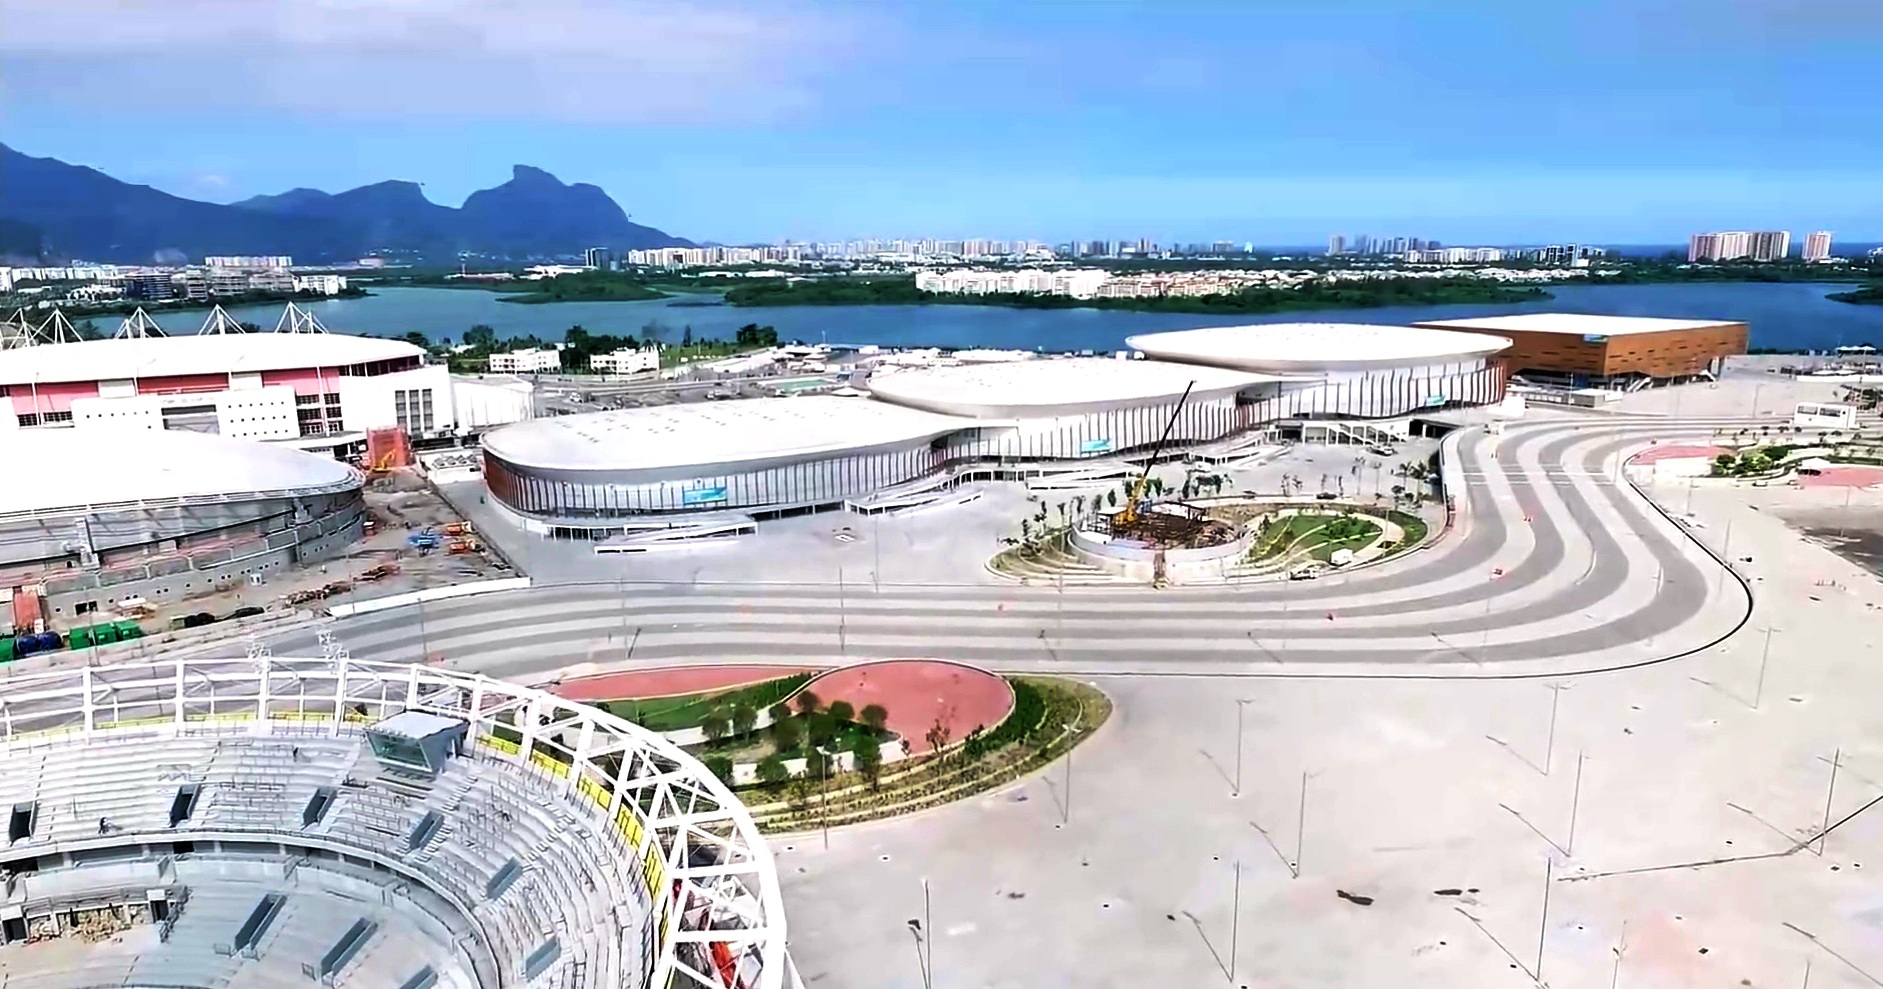 Venues of the 2016 summer olympics rio de janeiro games for Domon olympic city